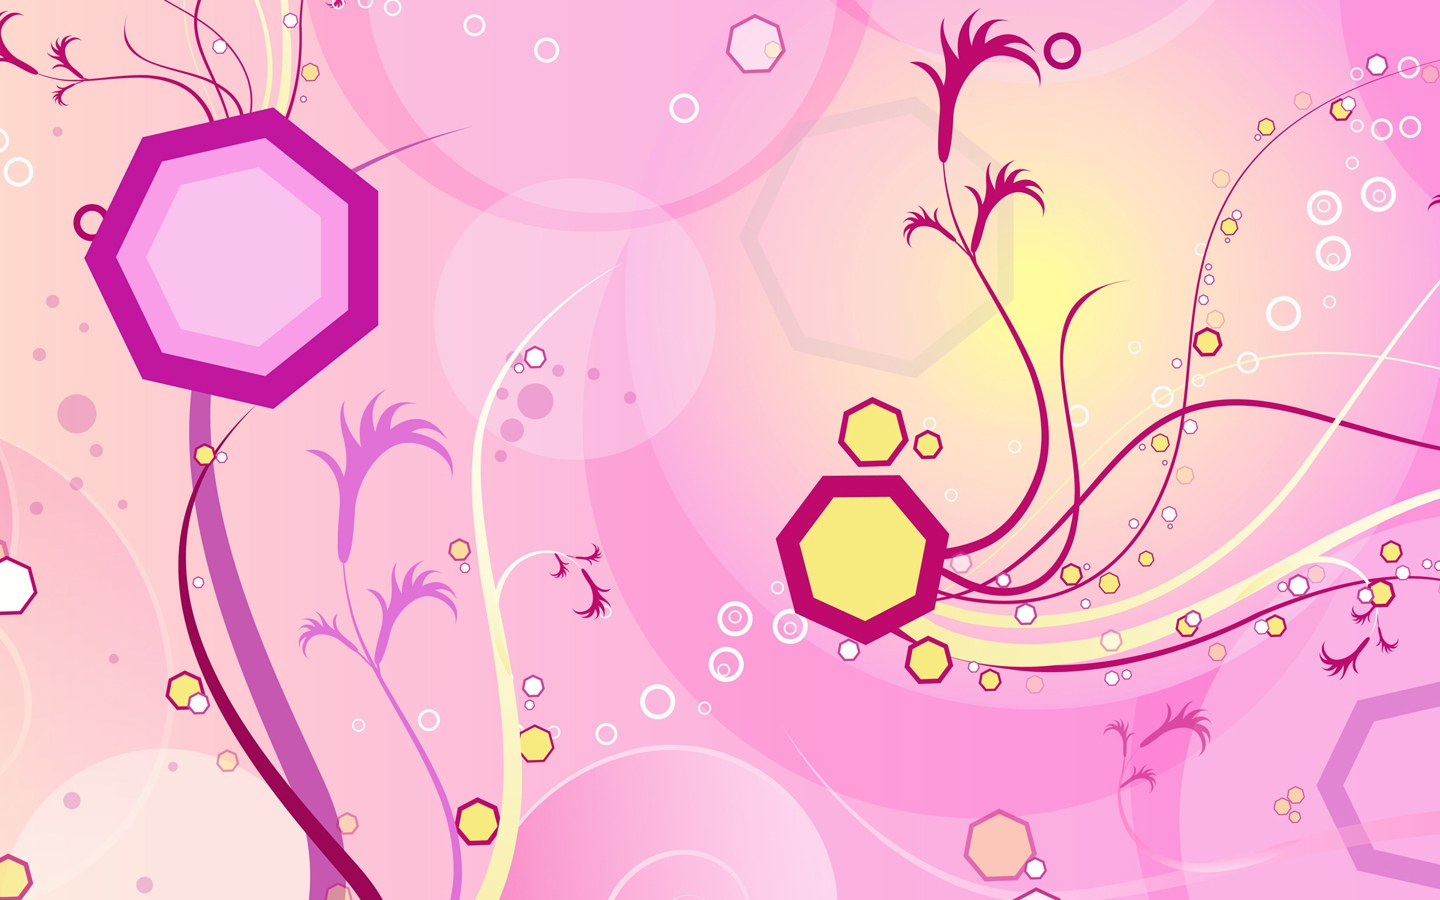 ... Art : Vector Flower Patterns Background 1440*900 NO.22 Wallpaper